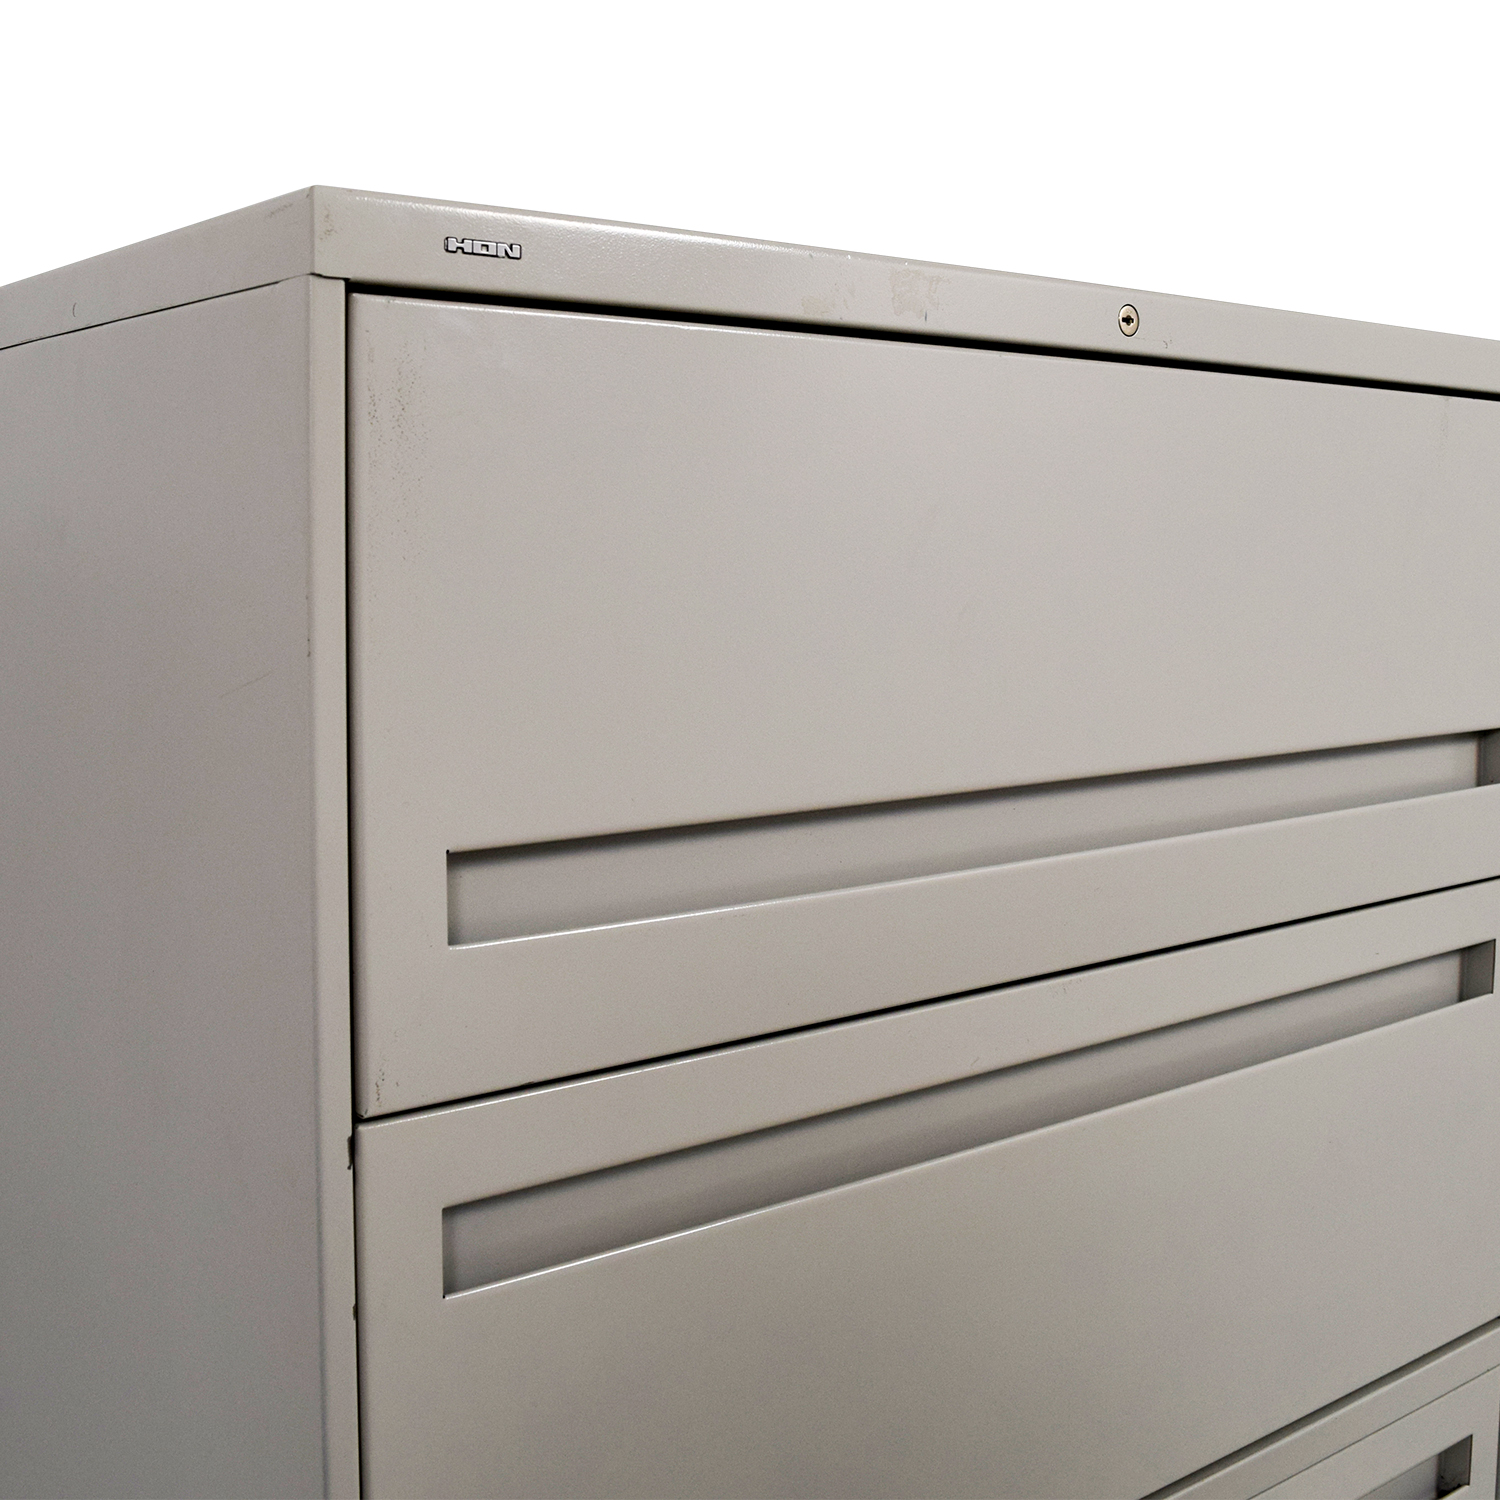 ... Hon White Five Drawer Lateral File Cabinet / Storage